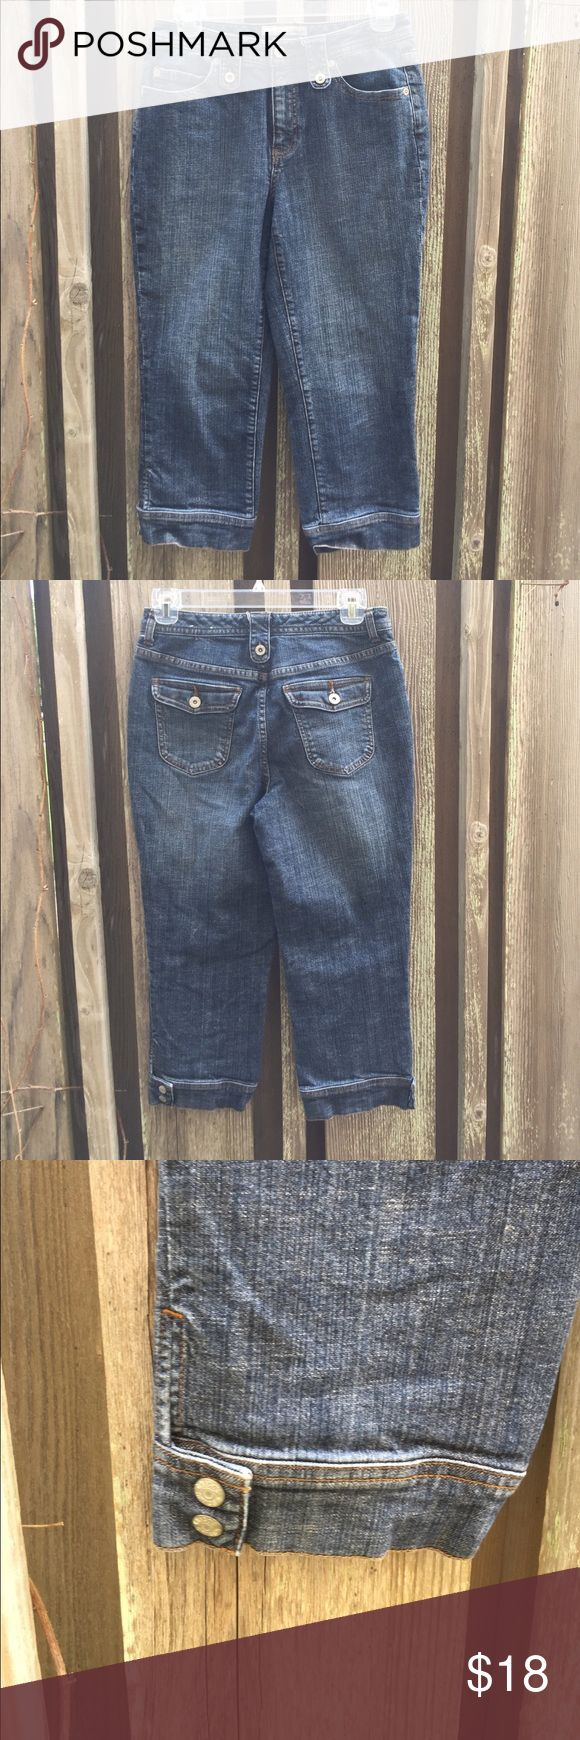 CHICO'S DENIM CAPRI Denim capris with two buttons at pant cuff see picture Chico's Pants Capris